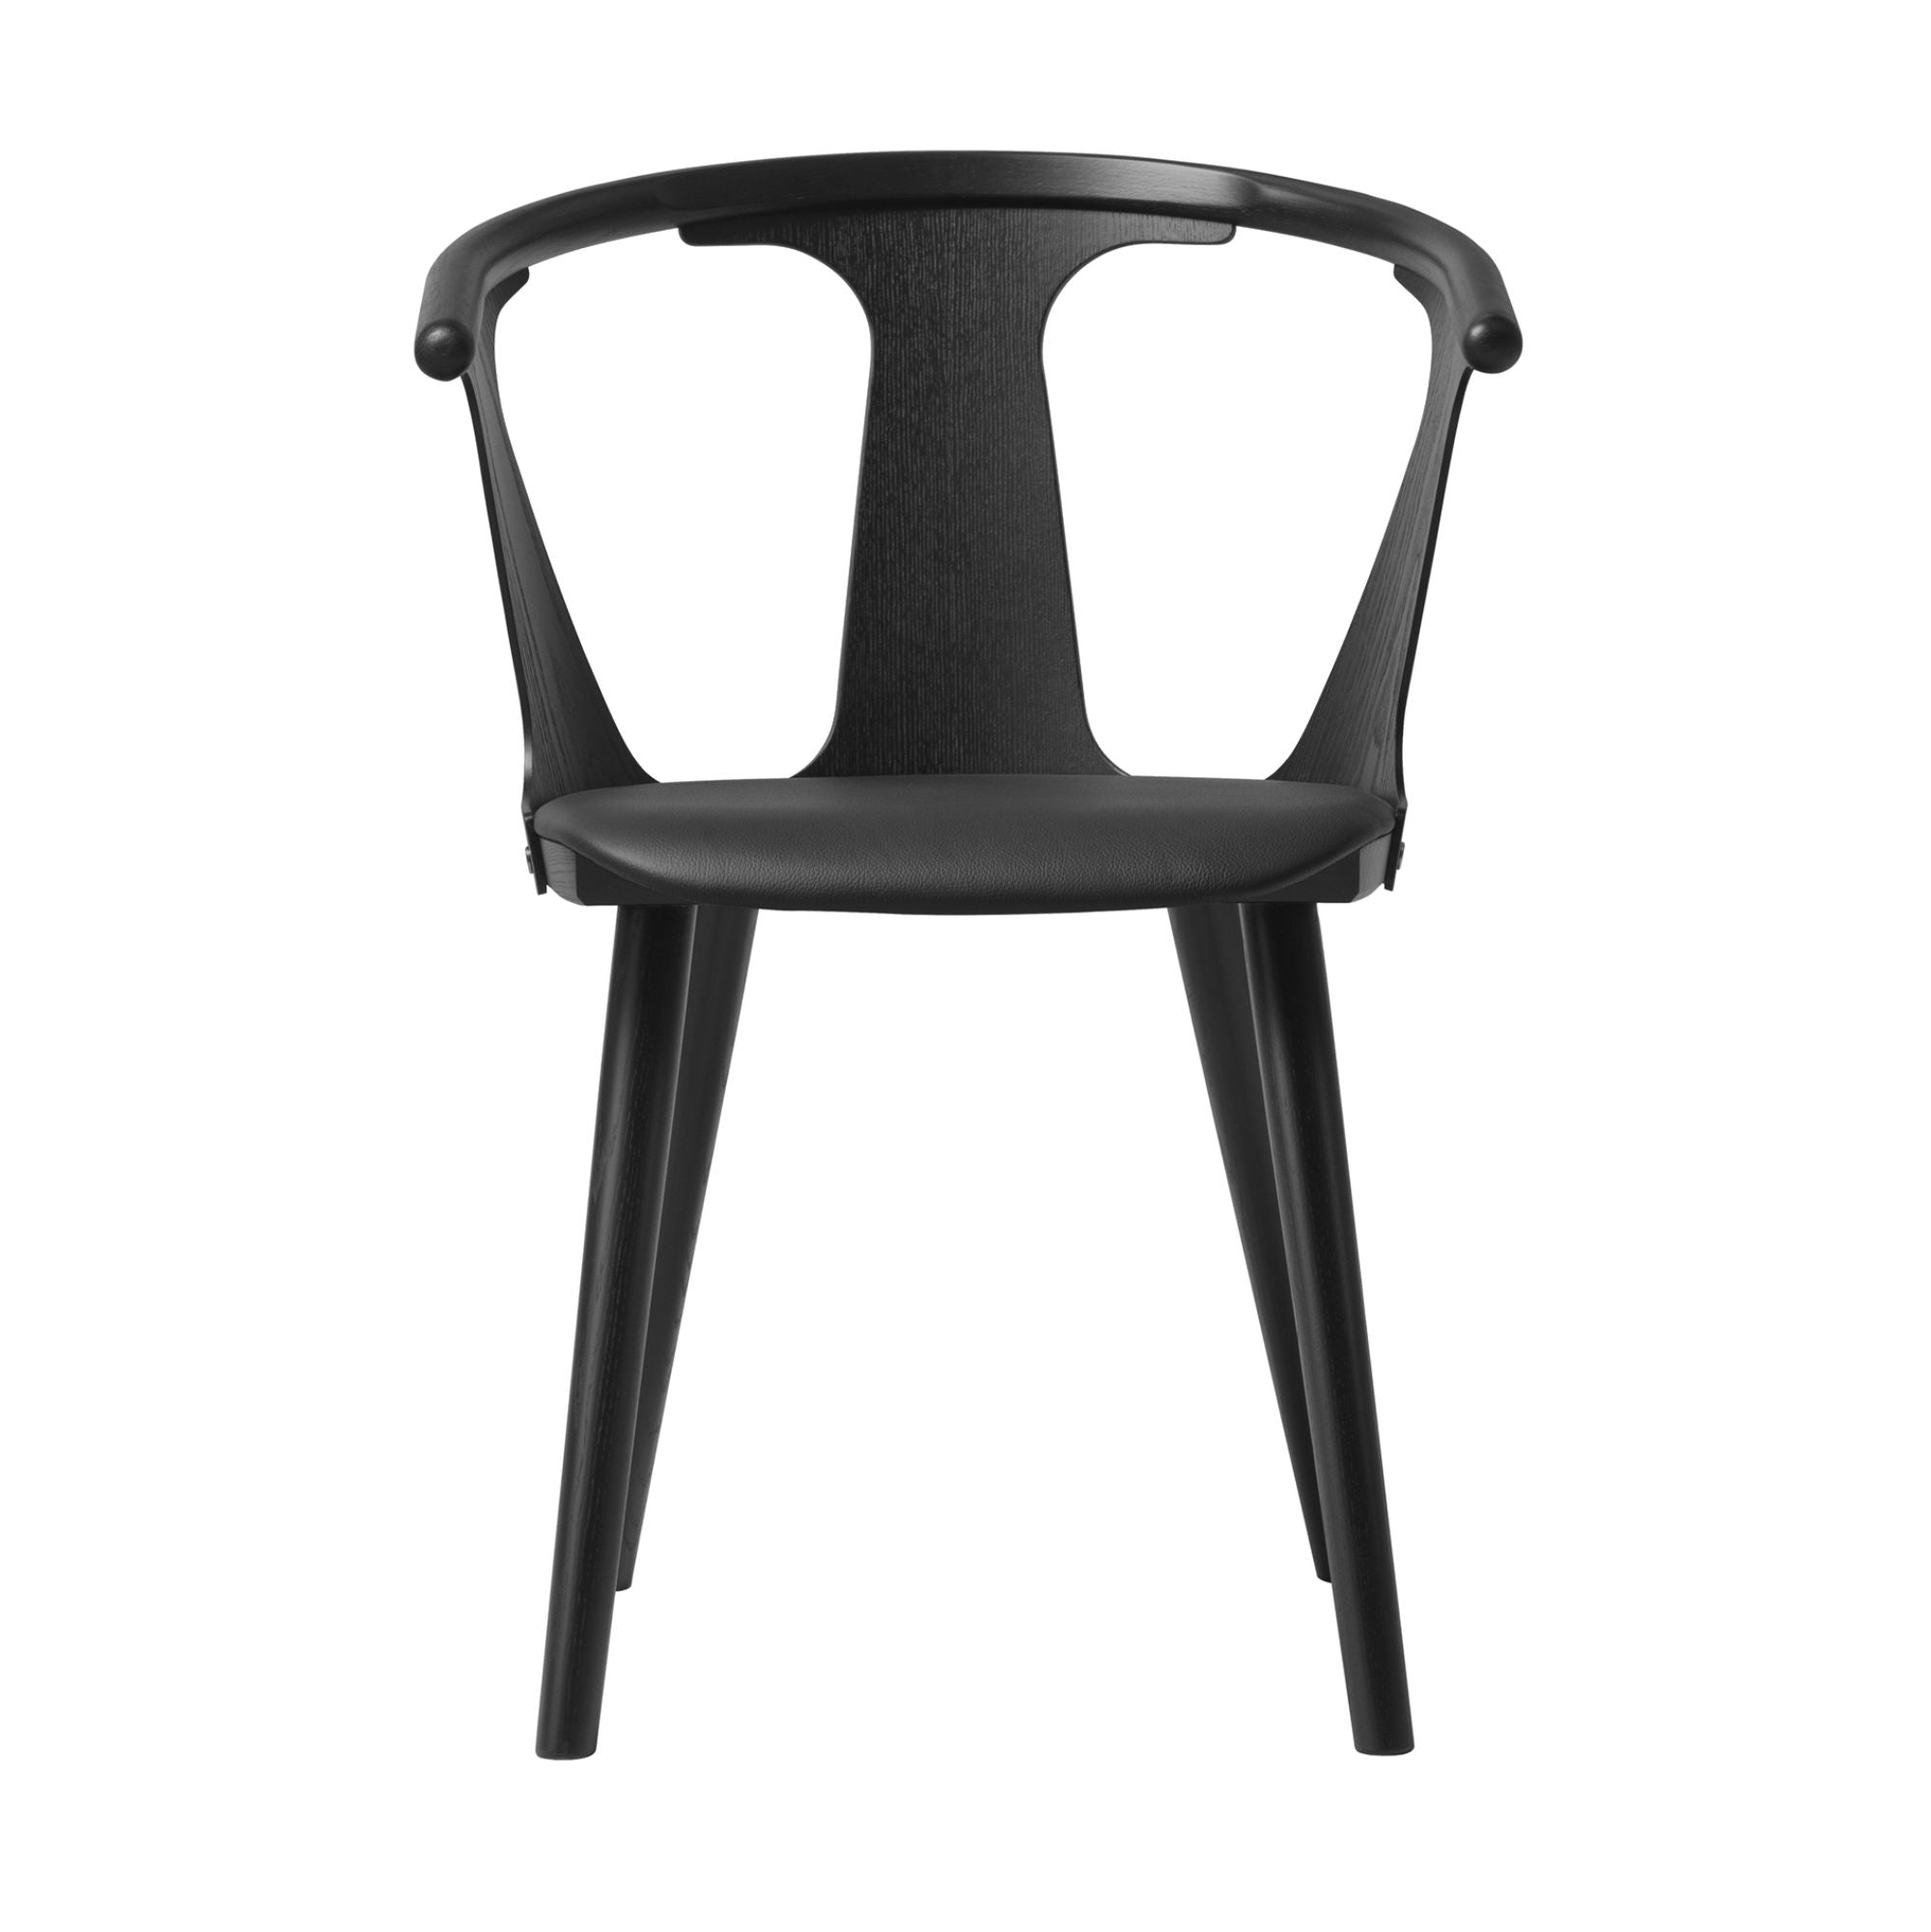 &Tradition SK2 In Between Chair , Black Silk leather - Black Lacquered Oak